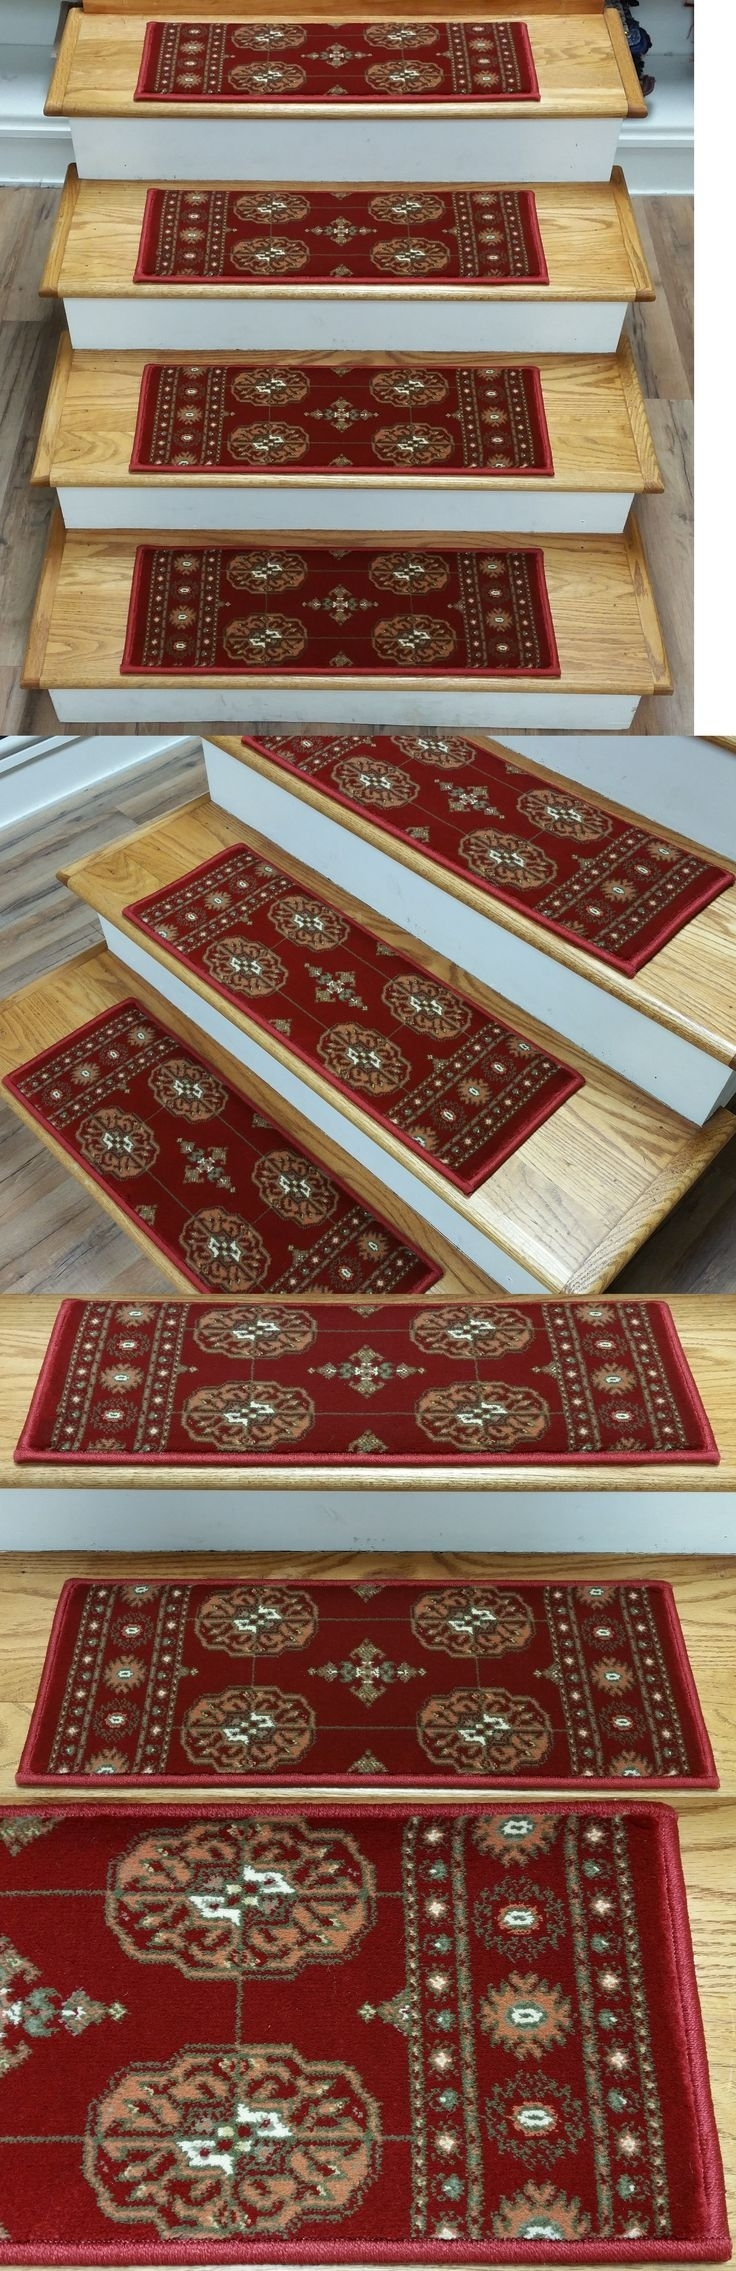 20 Best Collection Of Removable Carpet Stair Treads   Removable Carpet For Stairs